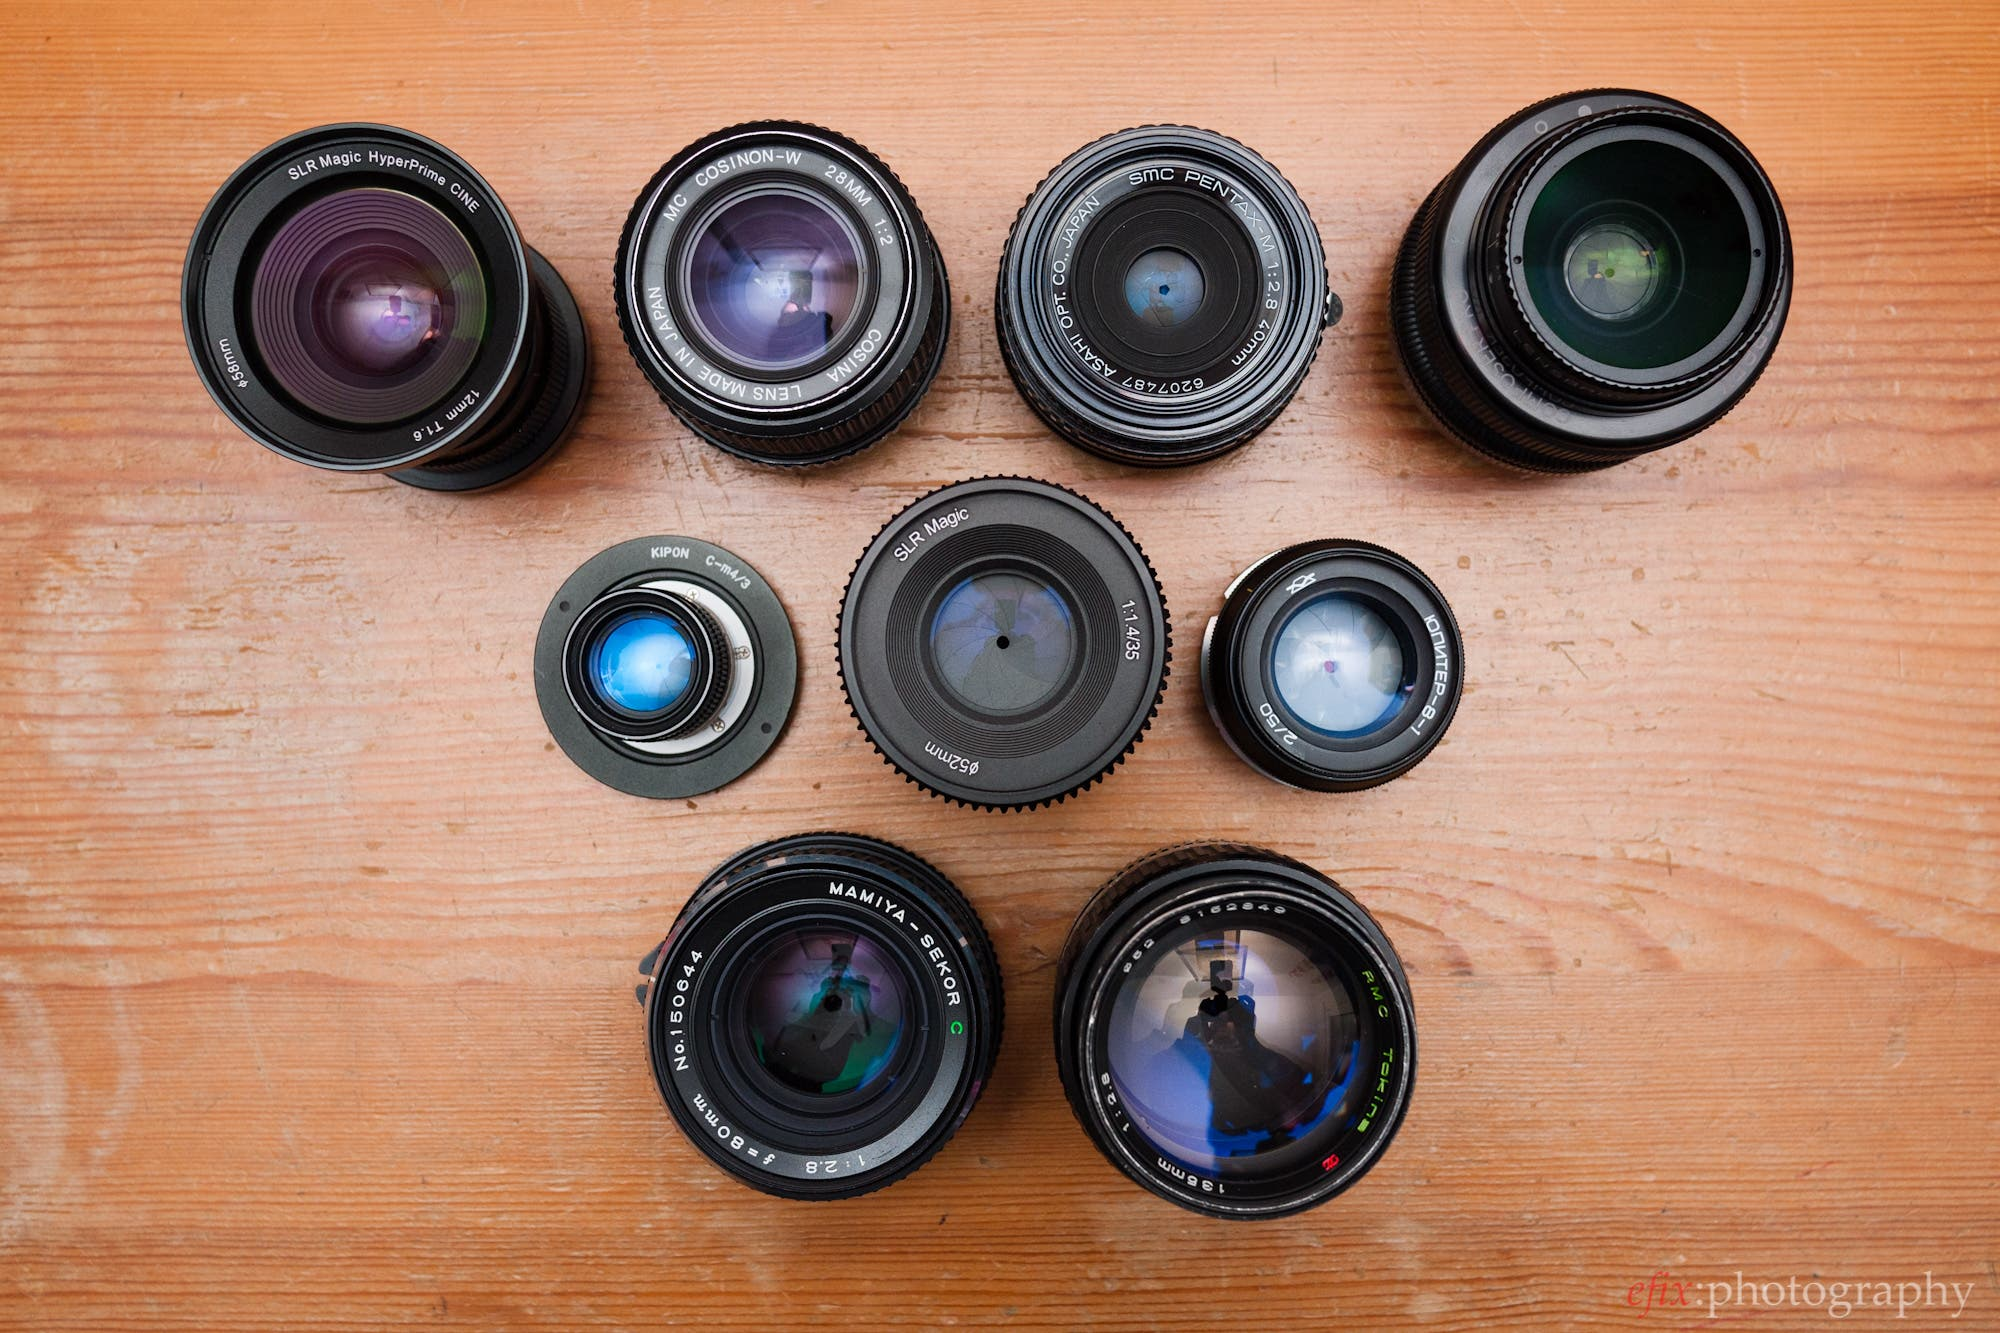 The Best Budget Camera Lenses for Your DSLR and Mirrorless Camera